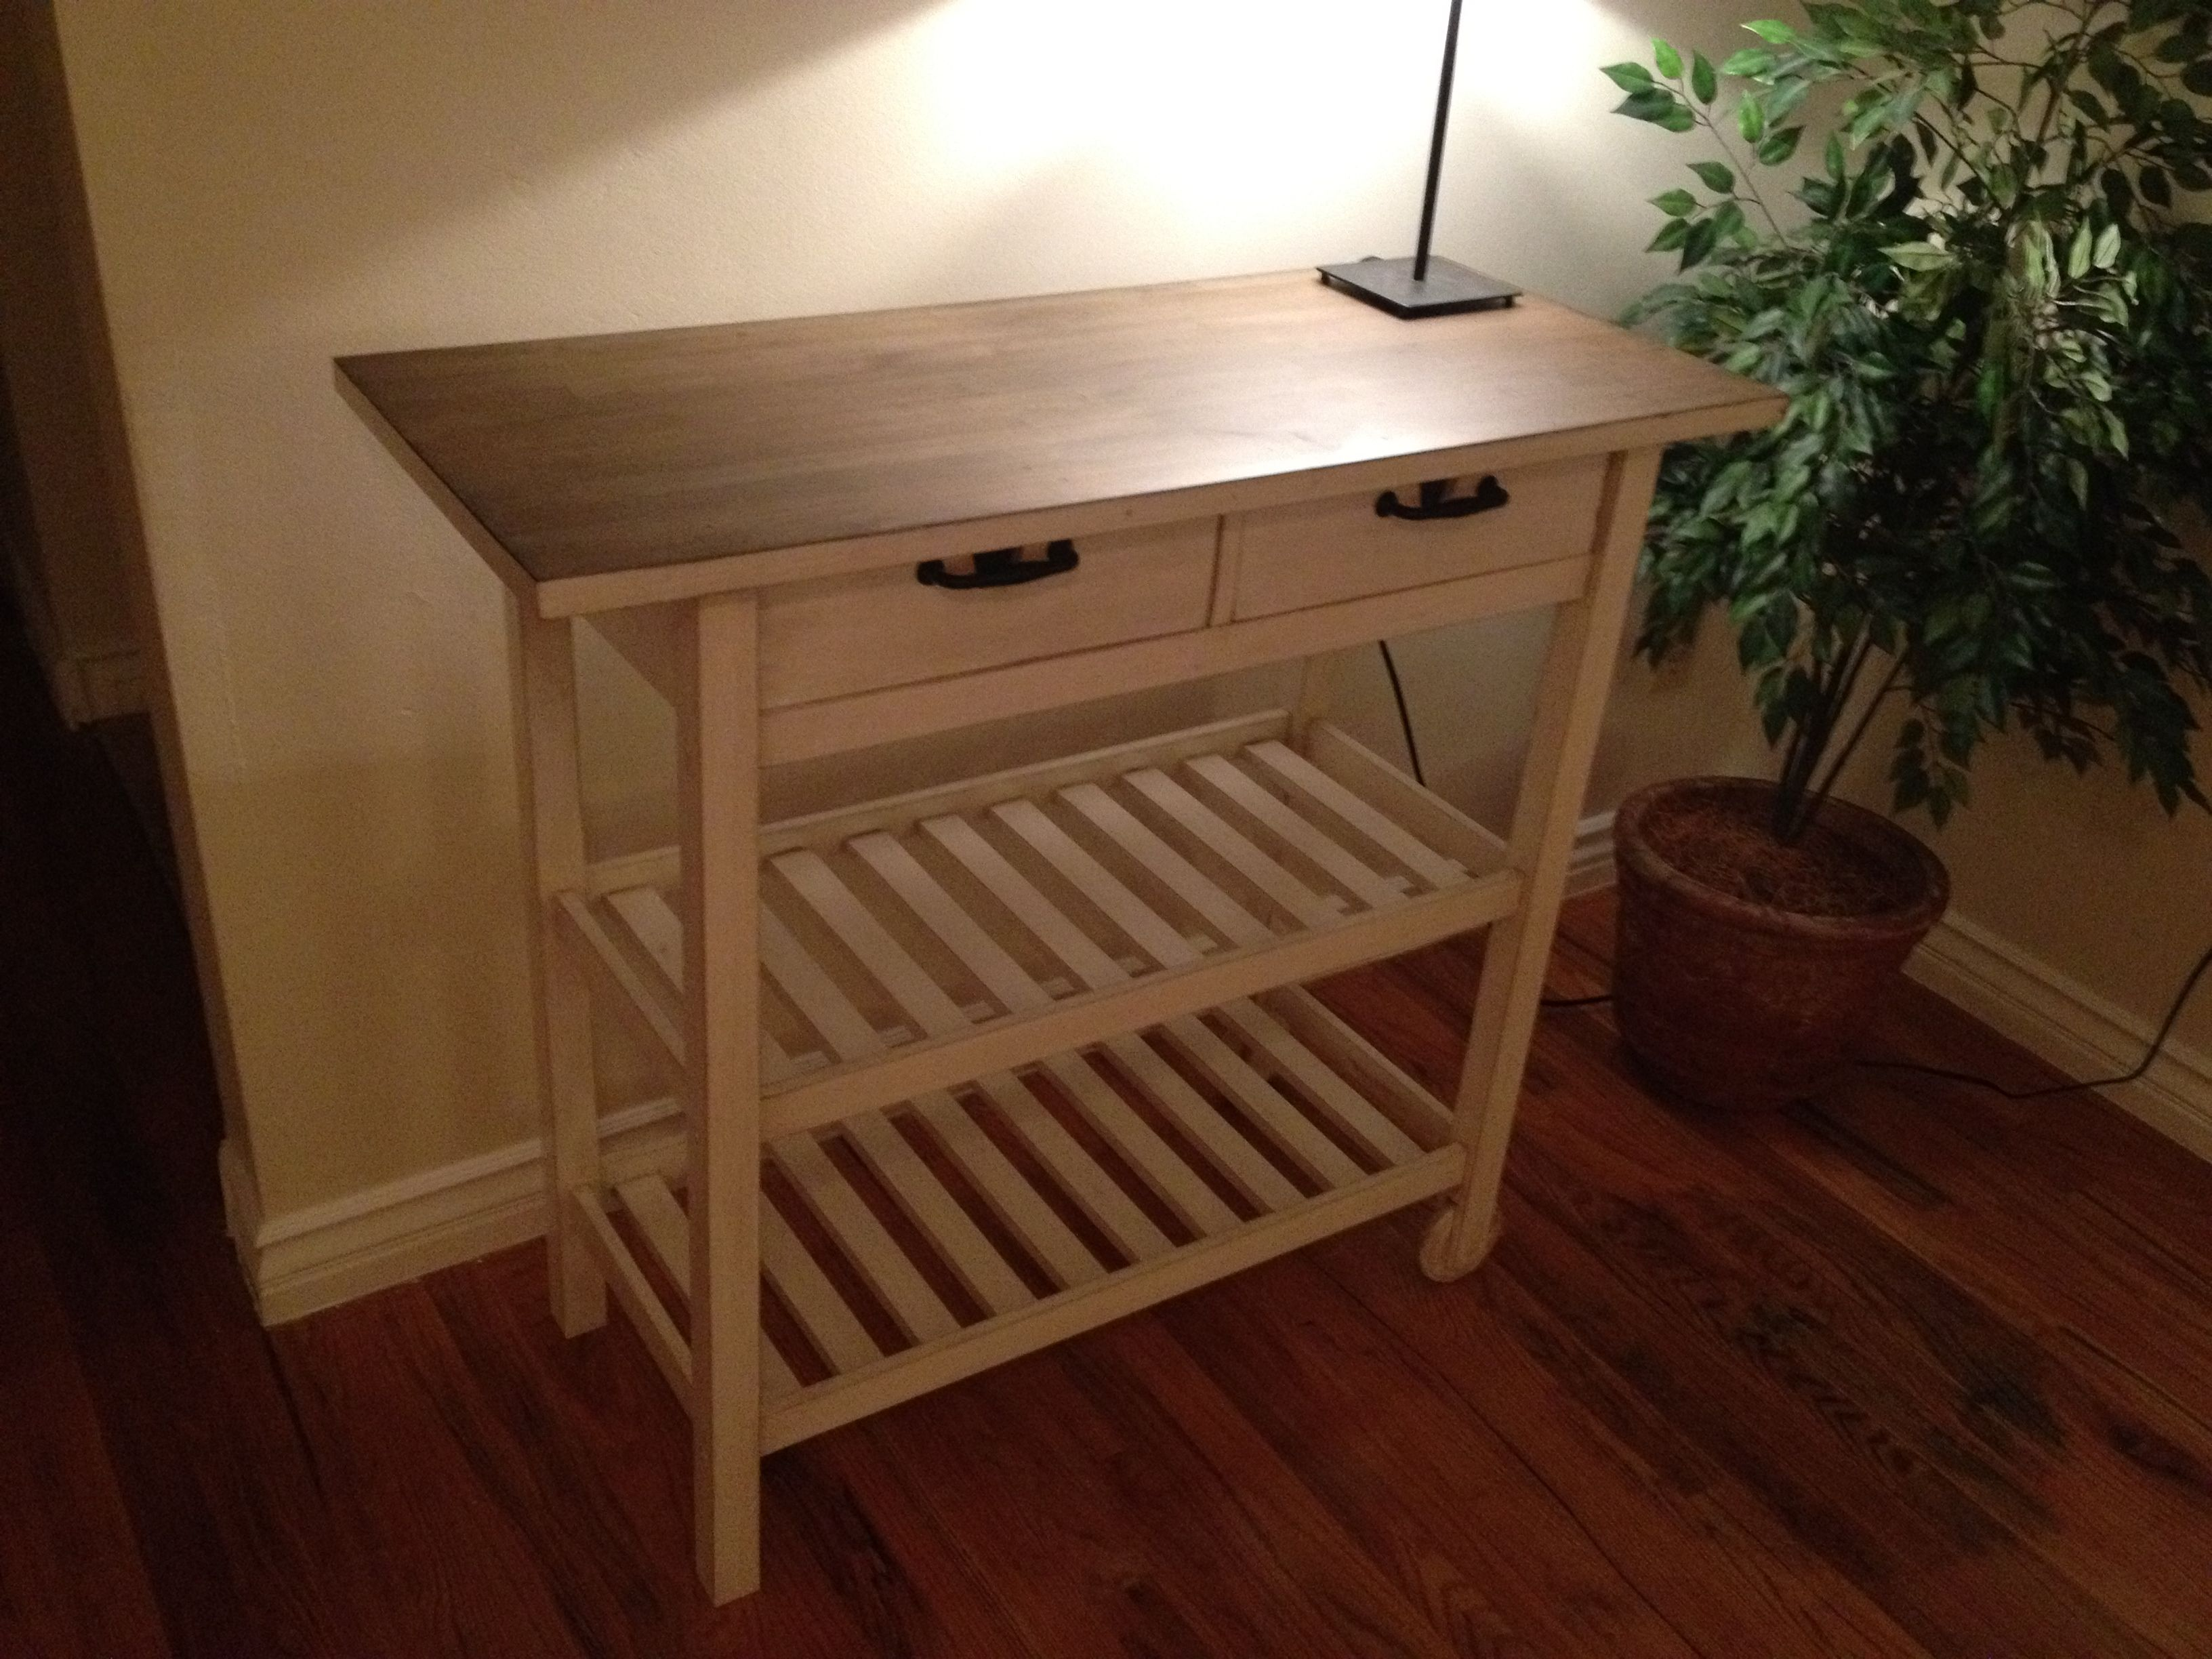 Ikea kitchen cart painted - Diy Ikea Kitchen Cart With White Paint Then Stained With Antique Glaze